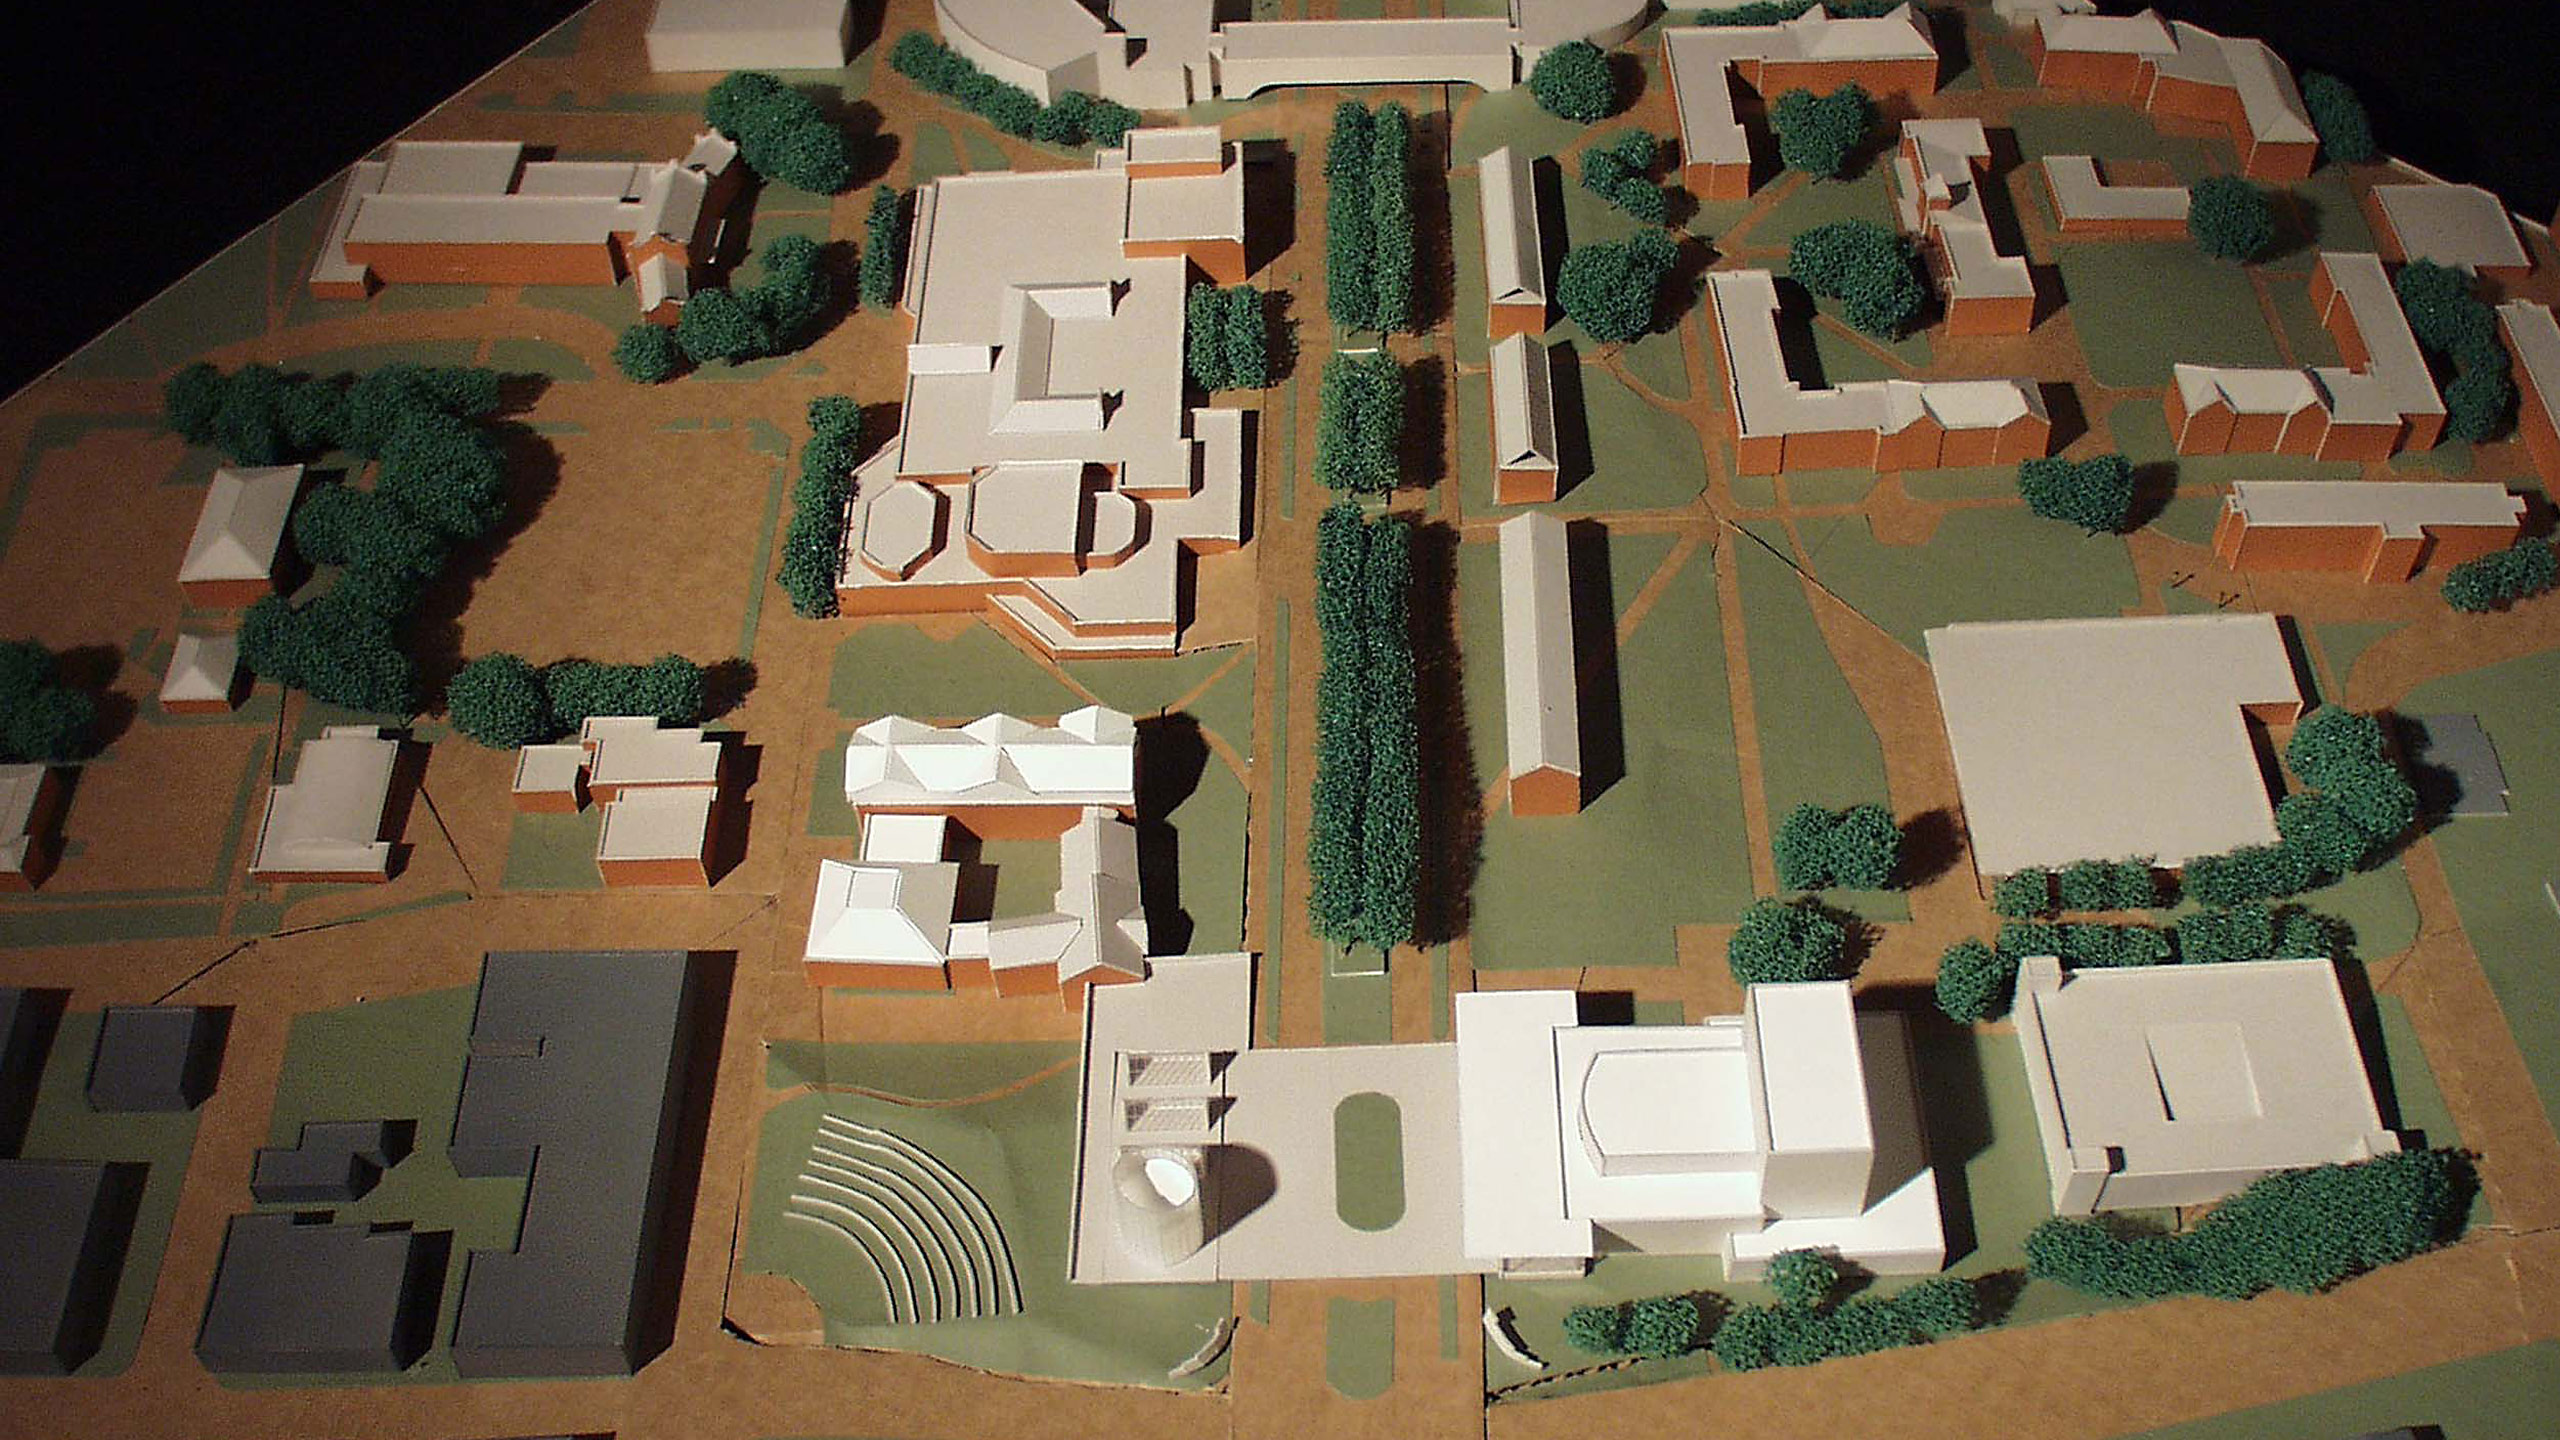 Arts Precinct Plan – Virginia Tech / image 5